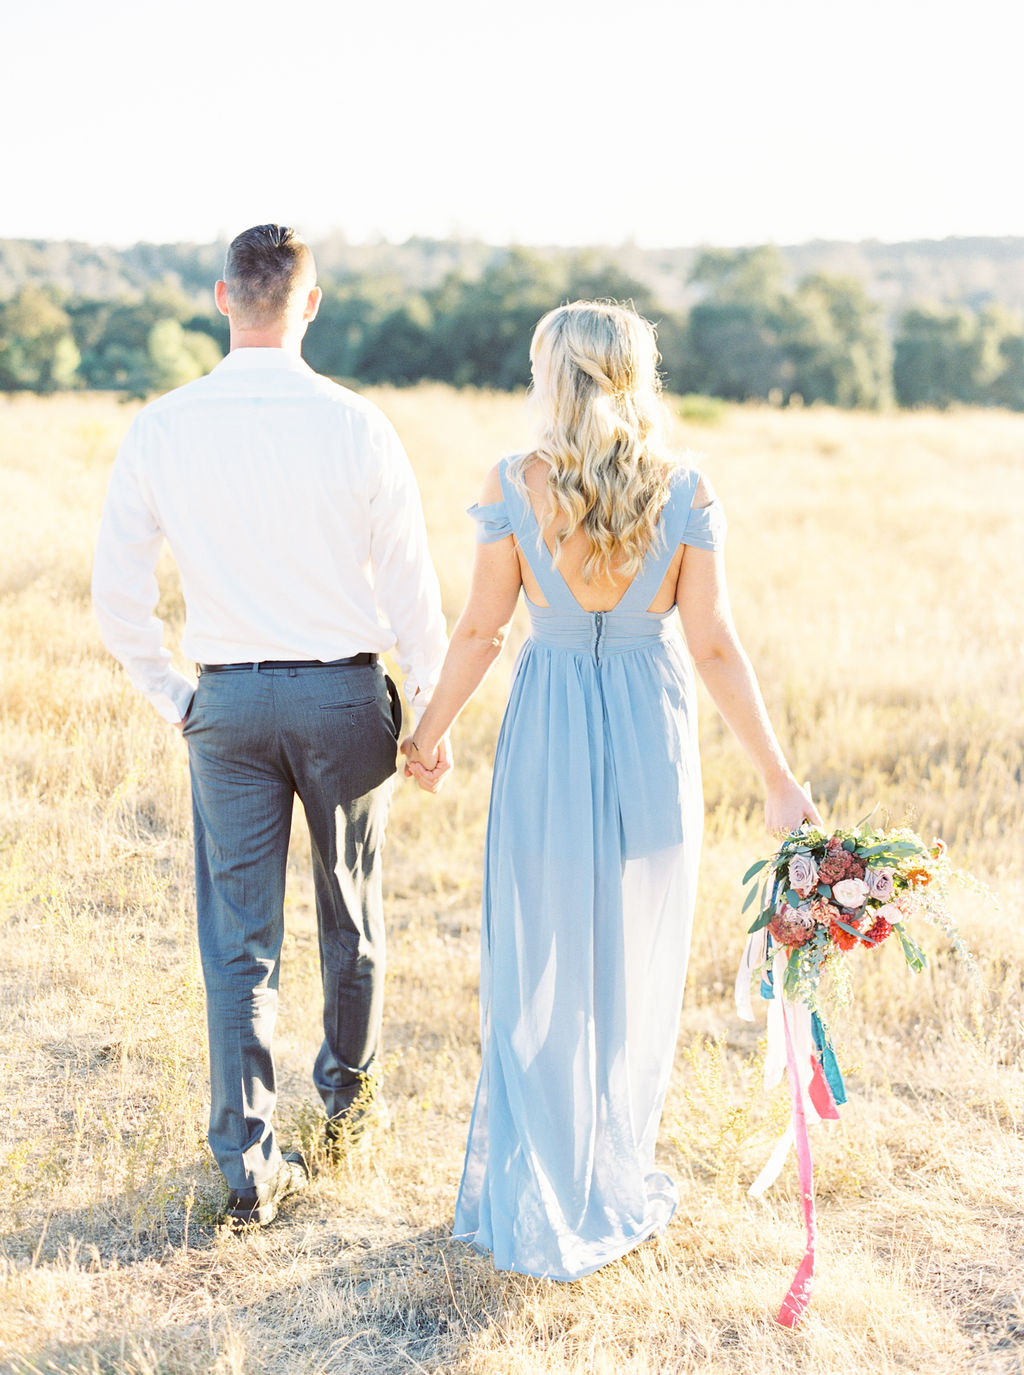 Pretty and dreamy engagement Photo featuring colorful floral bouquet with silk velvet ribbons